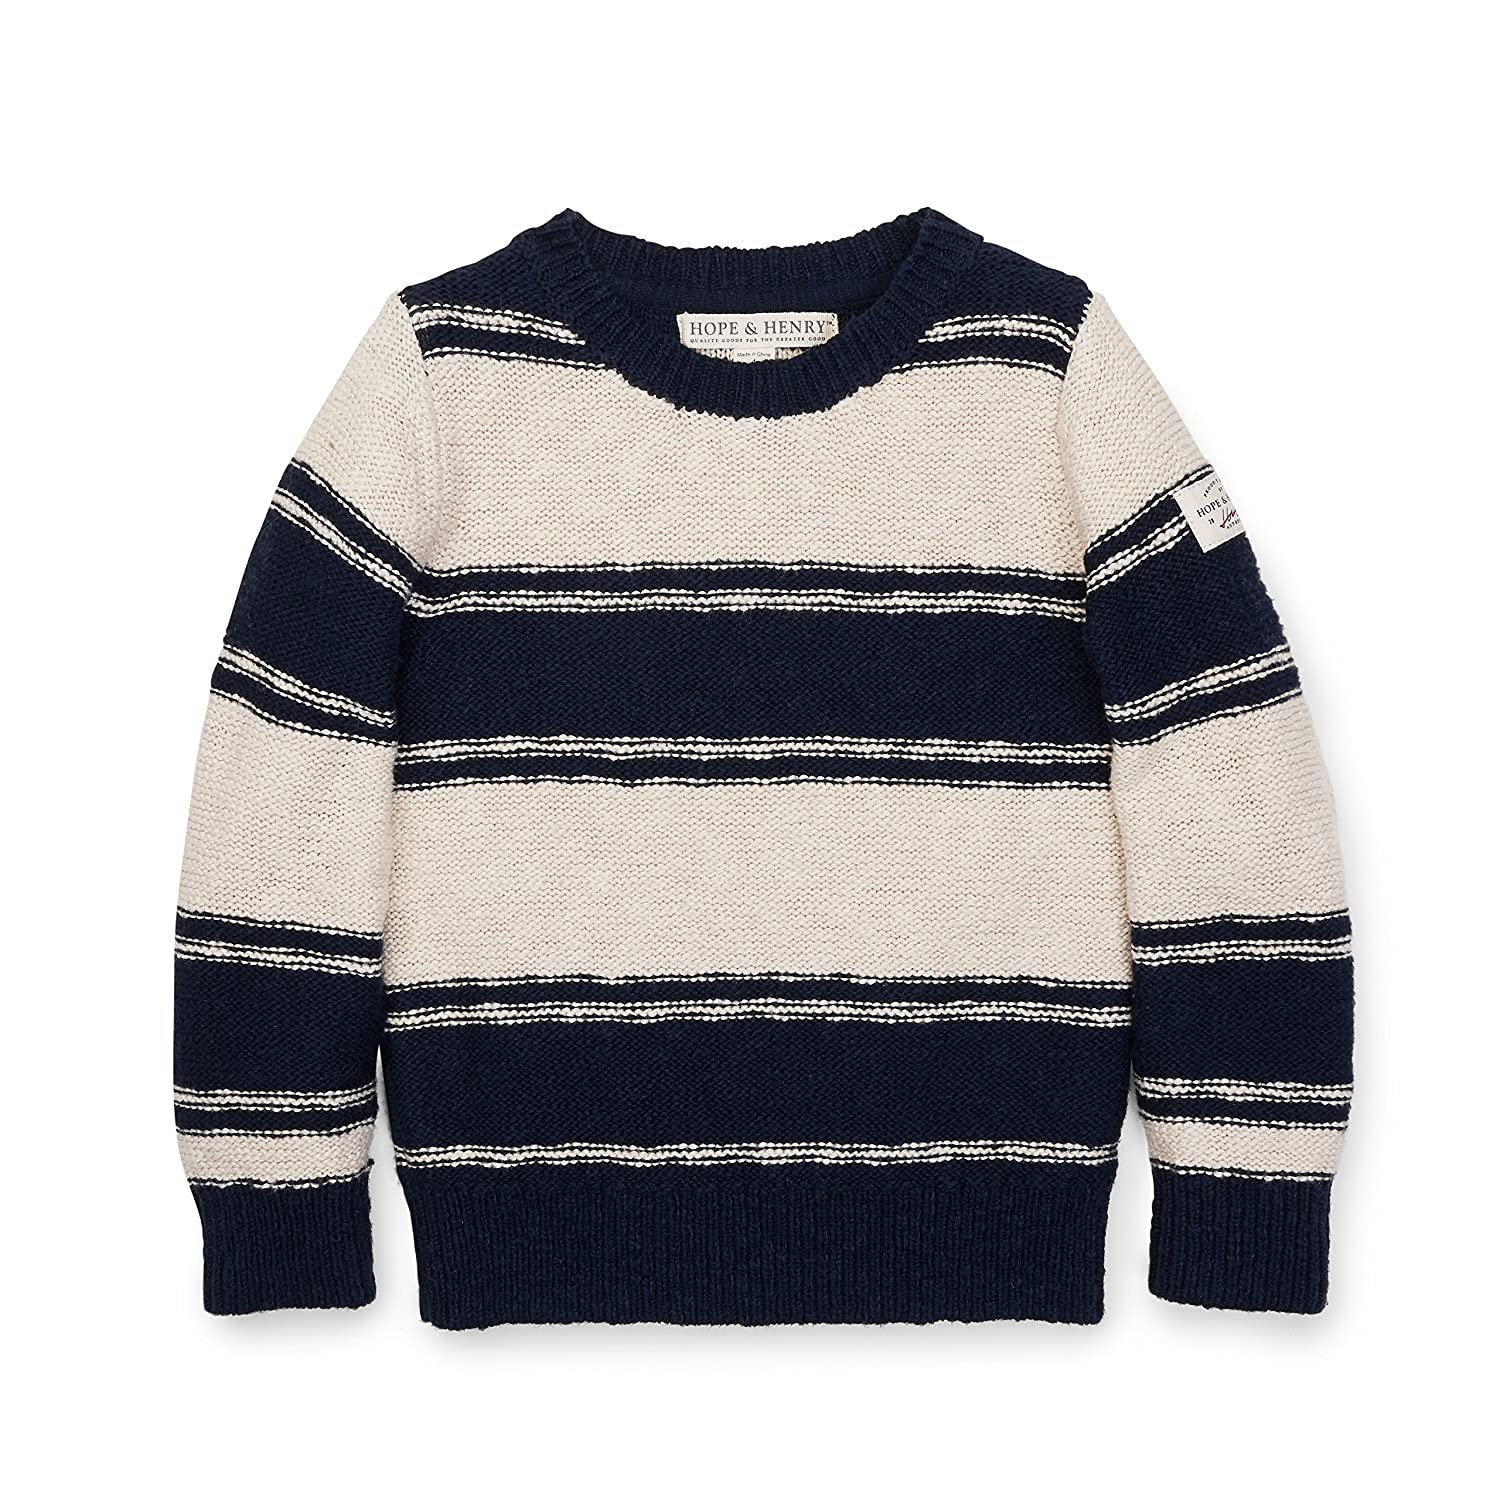 Hope & Henry Boys' Crew Oatmeal/Navy Neck Sweater Stripe